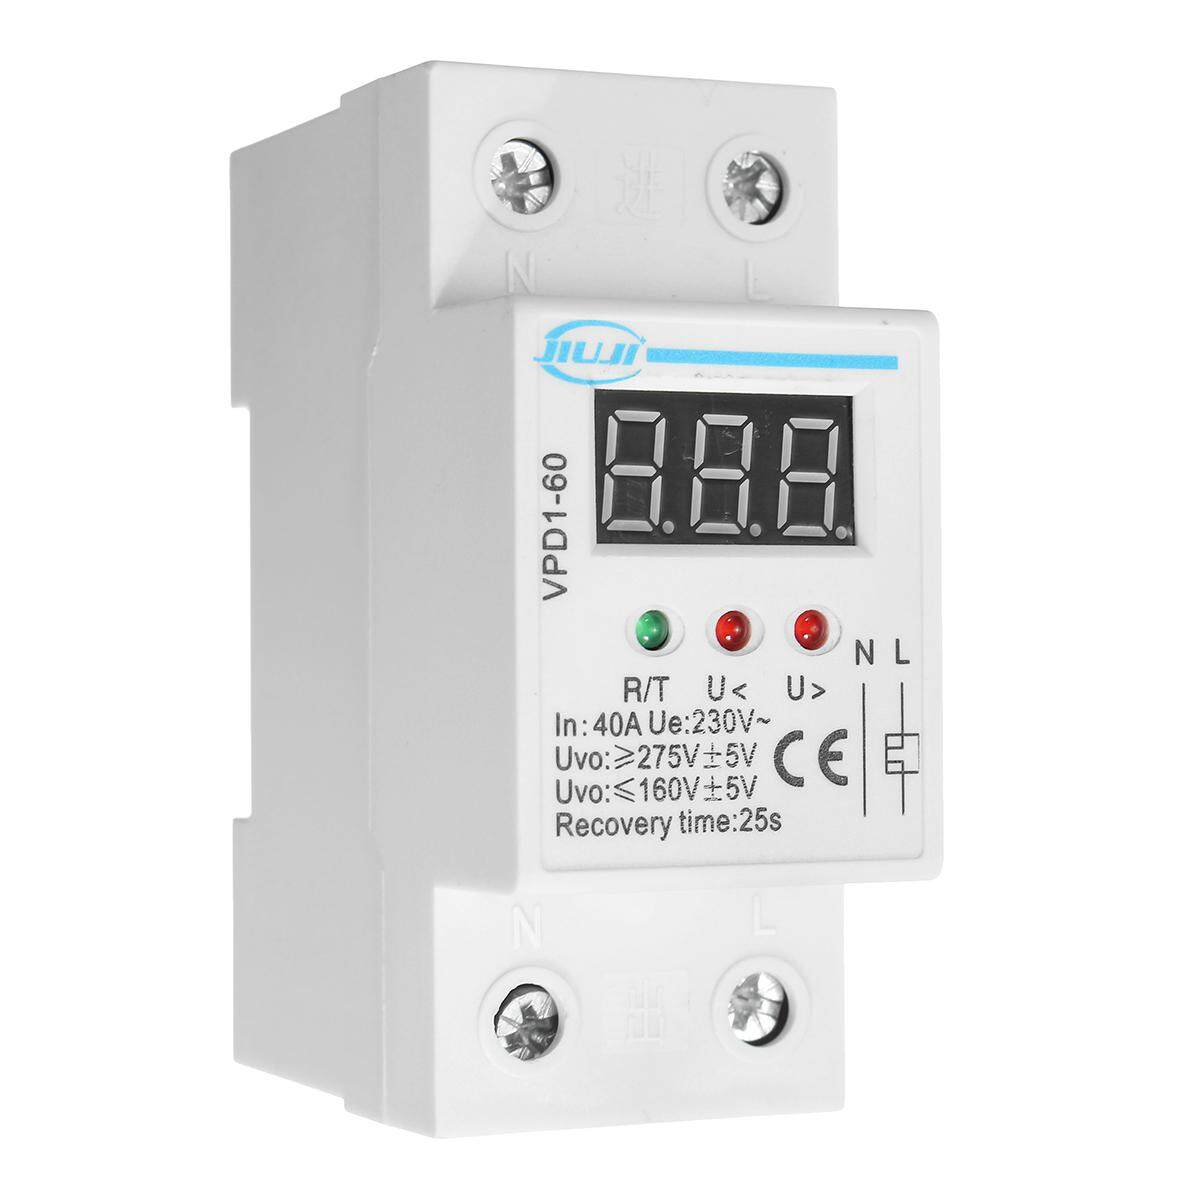 2pcs 40a 220v Automatic Over And Under Voltage Protective Device Relay With Voltmeter - Intl By Elec Mall.